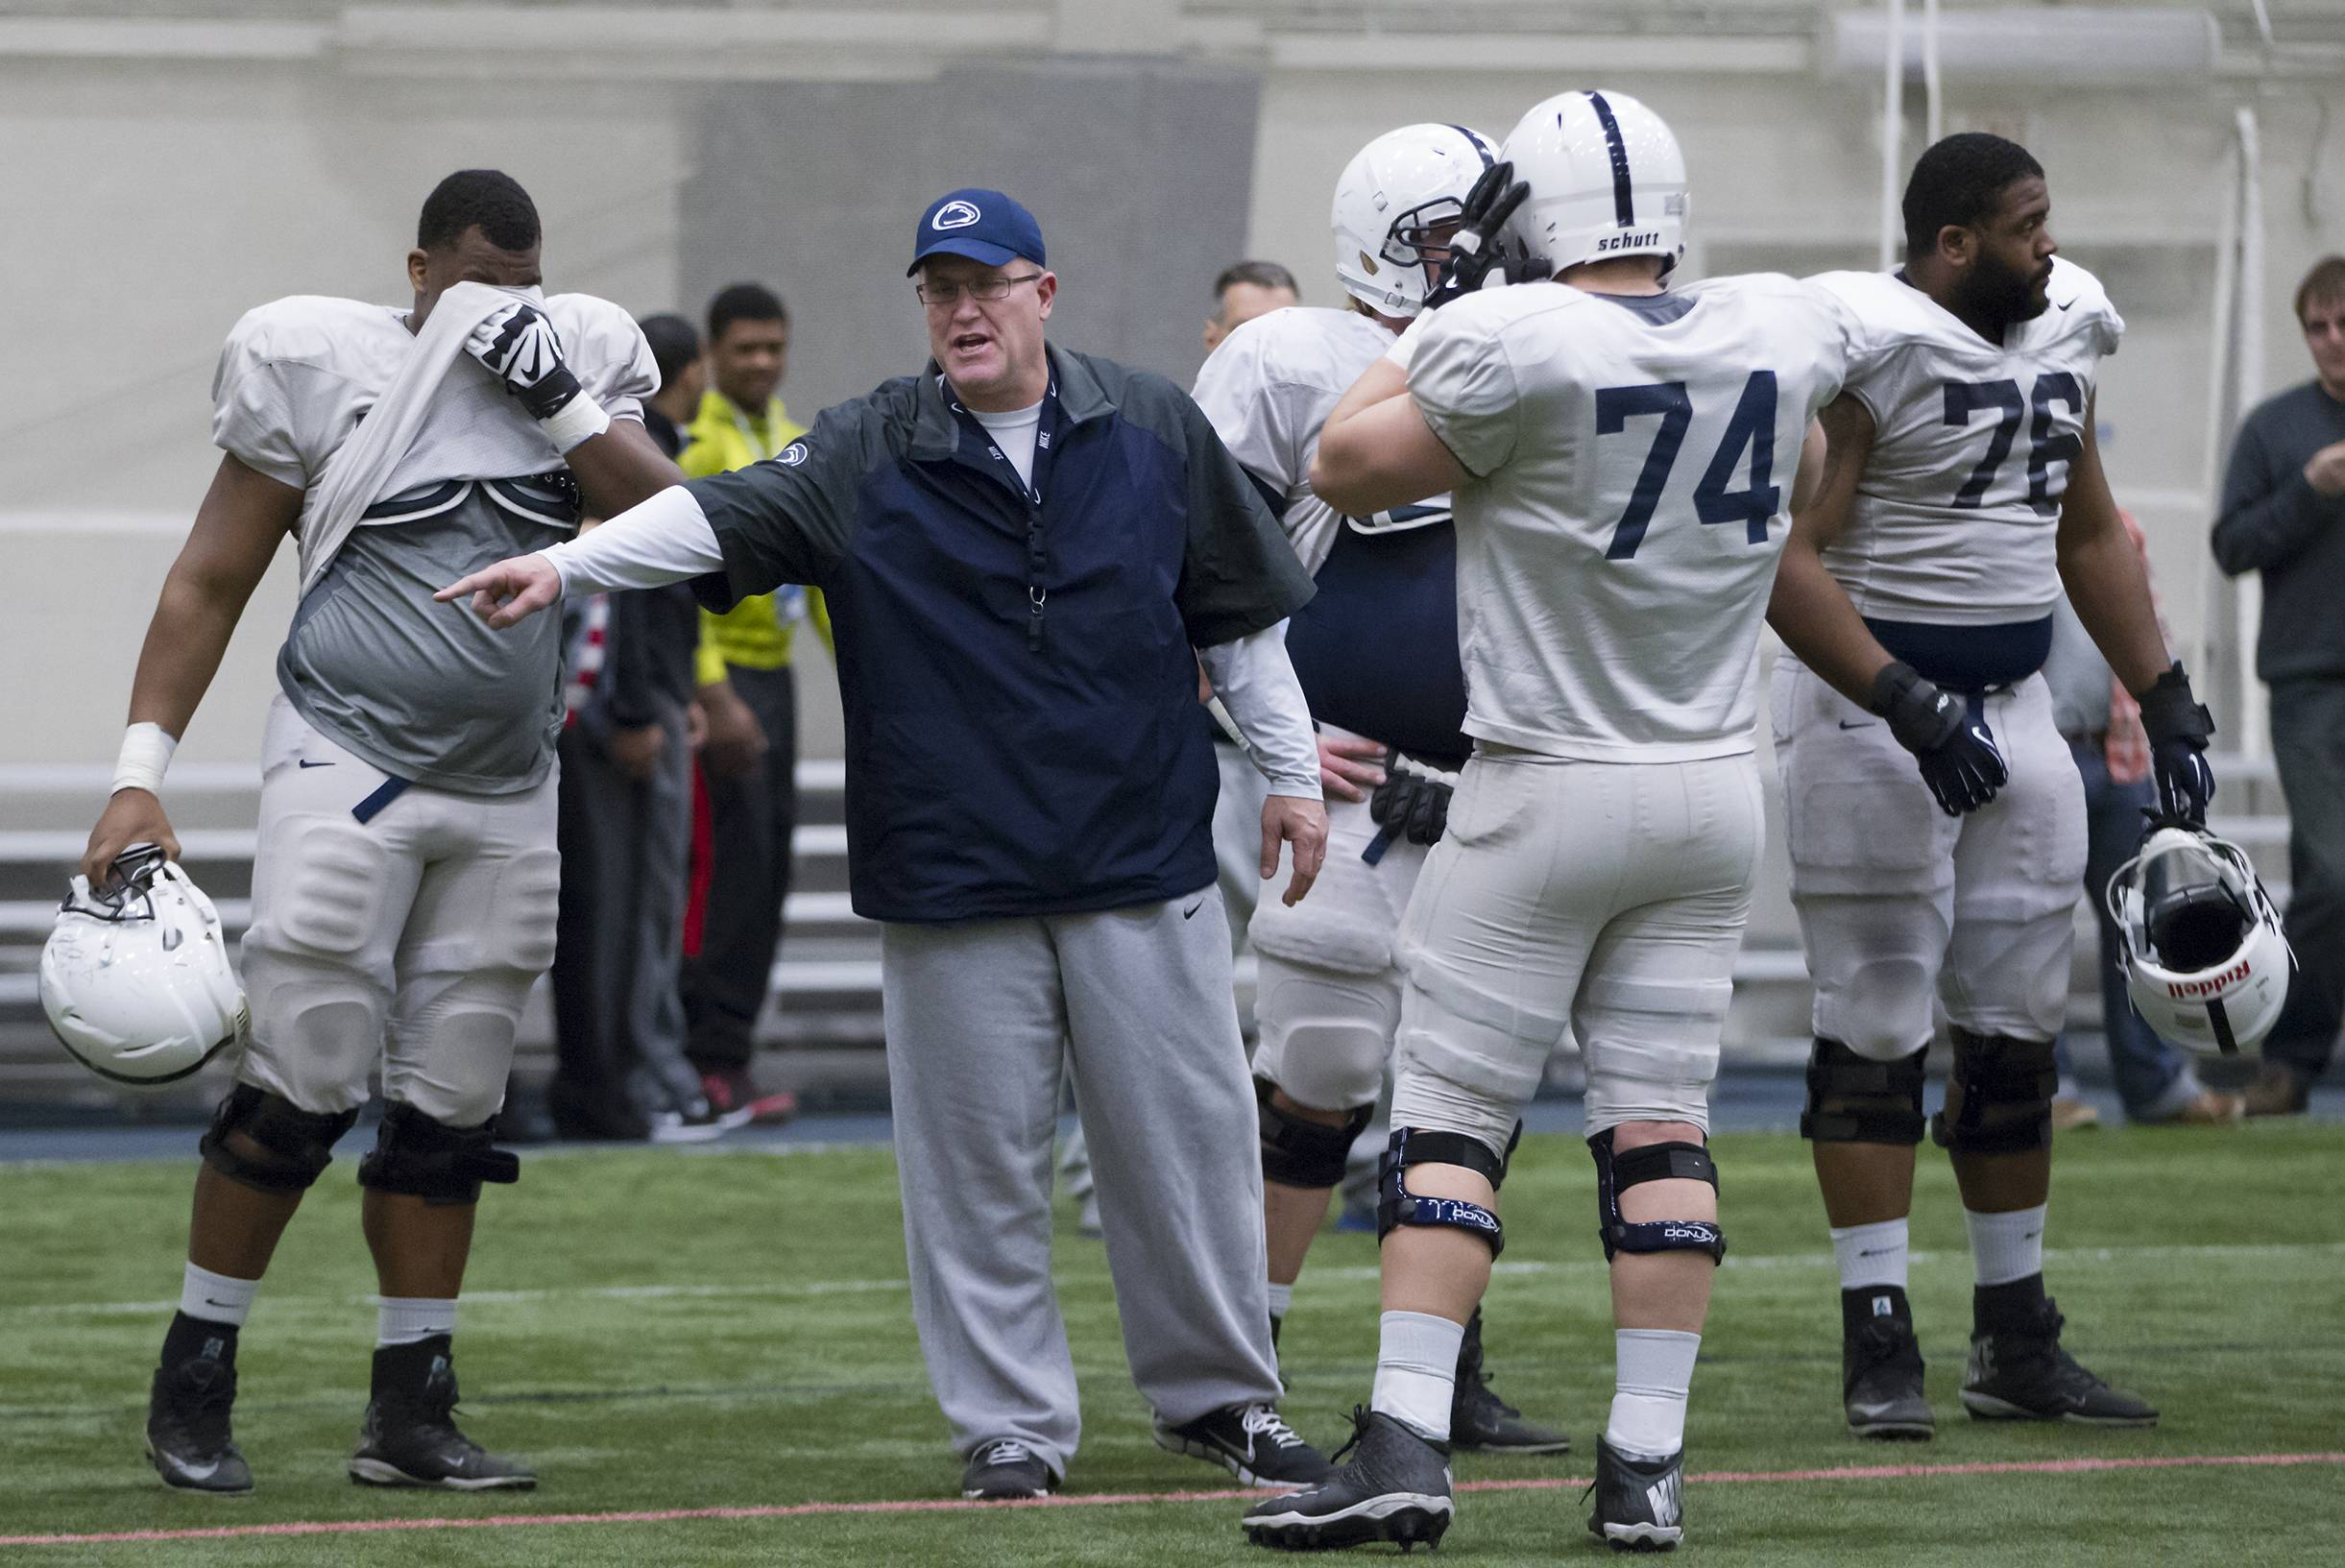 "Penn State offensive line coach Herb Hand motions to players during a team practice in State College, Pa. Hand, who took to Twitter recently to vent his frustration with a recruit gone bad online. ""Dropped another prospect this AM due to his social media presence ... Actually glad I got to see the 'real' person before we offered him,"" Hand tweeted."